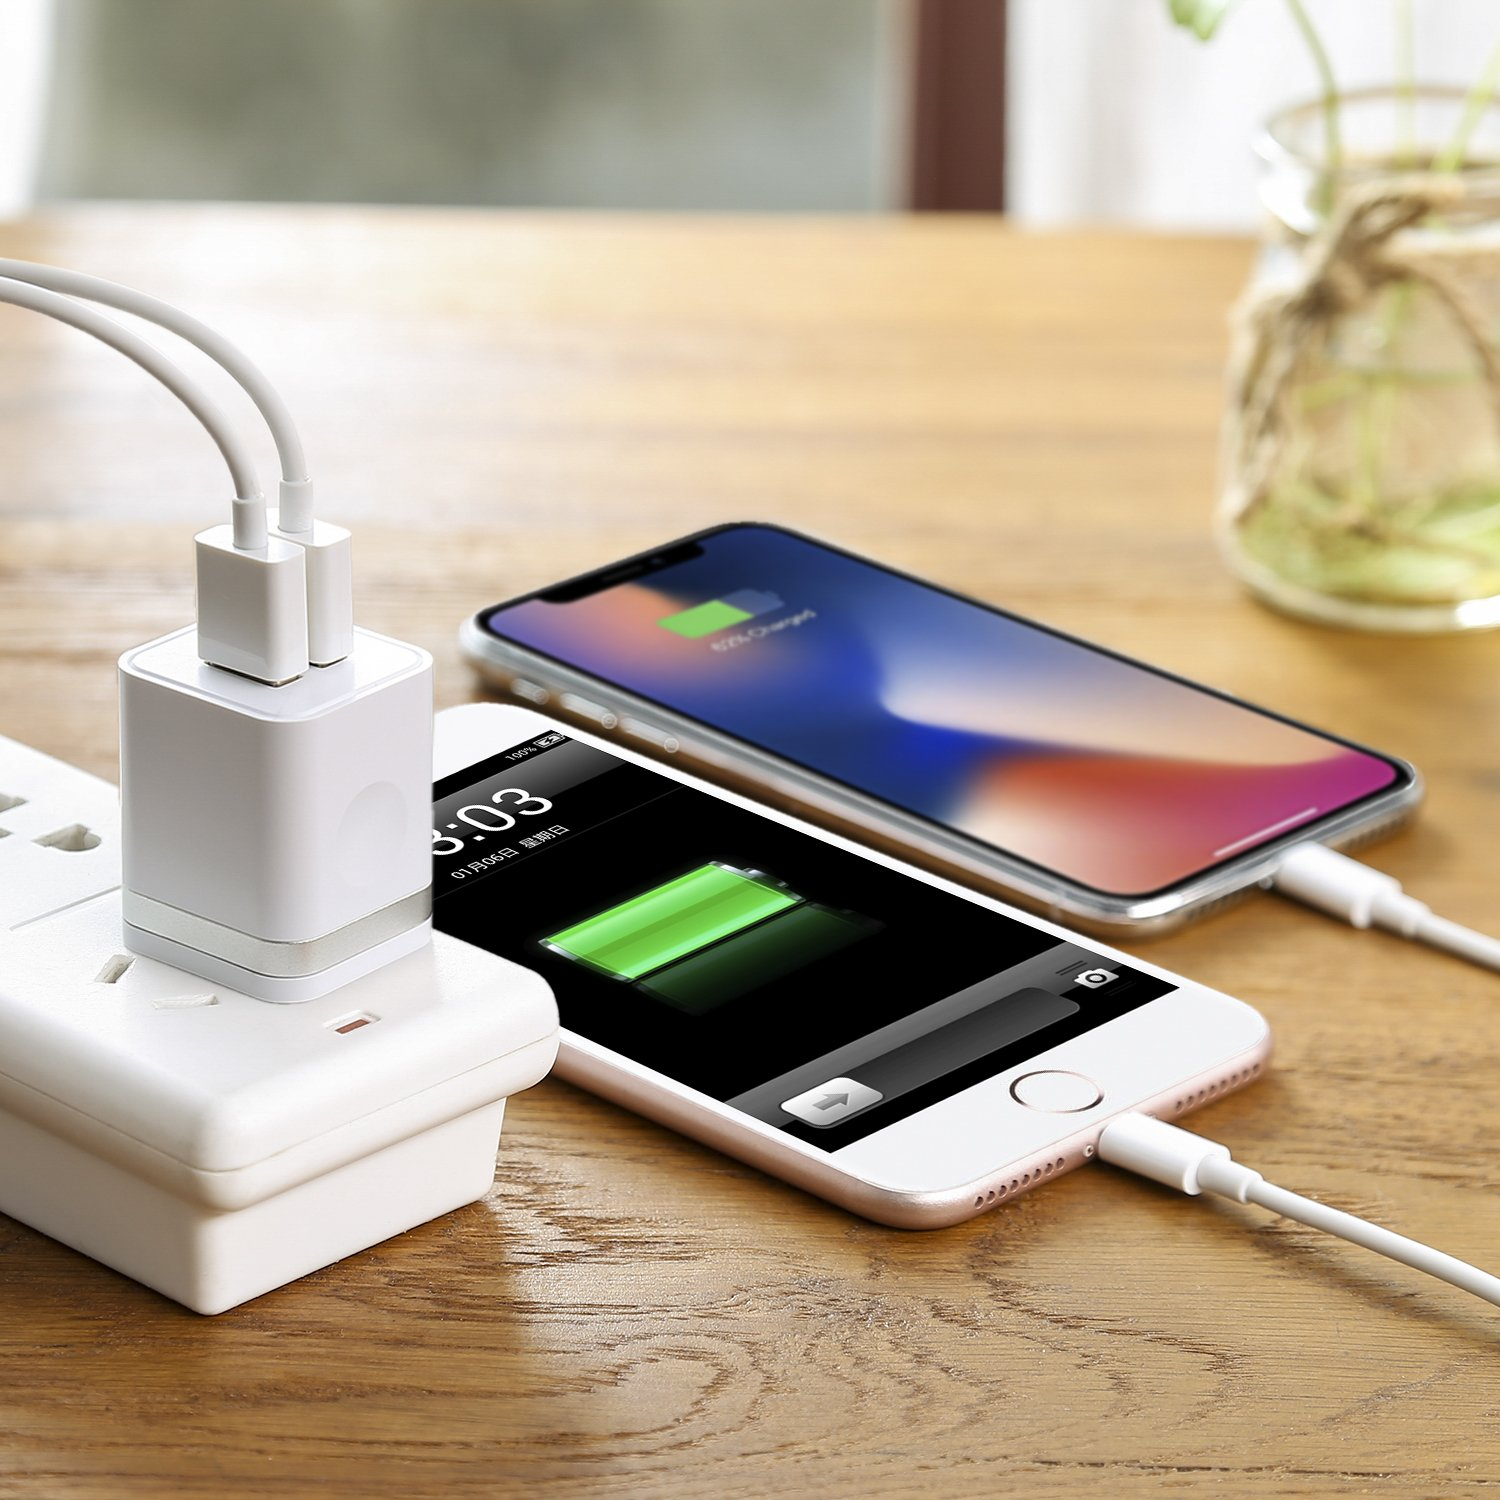 LEEKOTECH USB Wall Charger, [UL Certified] 3-Pack 2.1A USB Plug Dual Port Power Adapter Charging Block Cube for iPhone X 8 7 6 Plus 4 5S, iPad, Samsung Galaxy S5 S6 S7 Edge, Android Cell Phone by LEEKOTECH (Image #7)